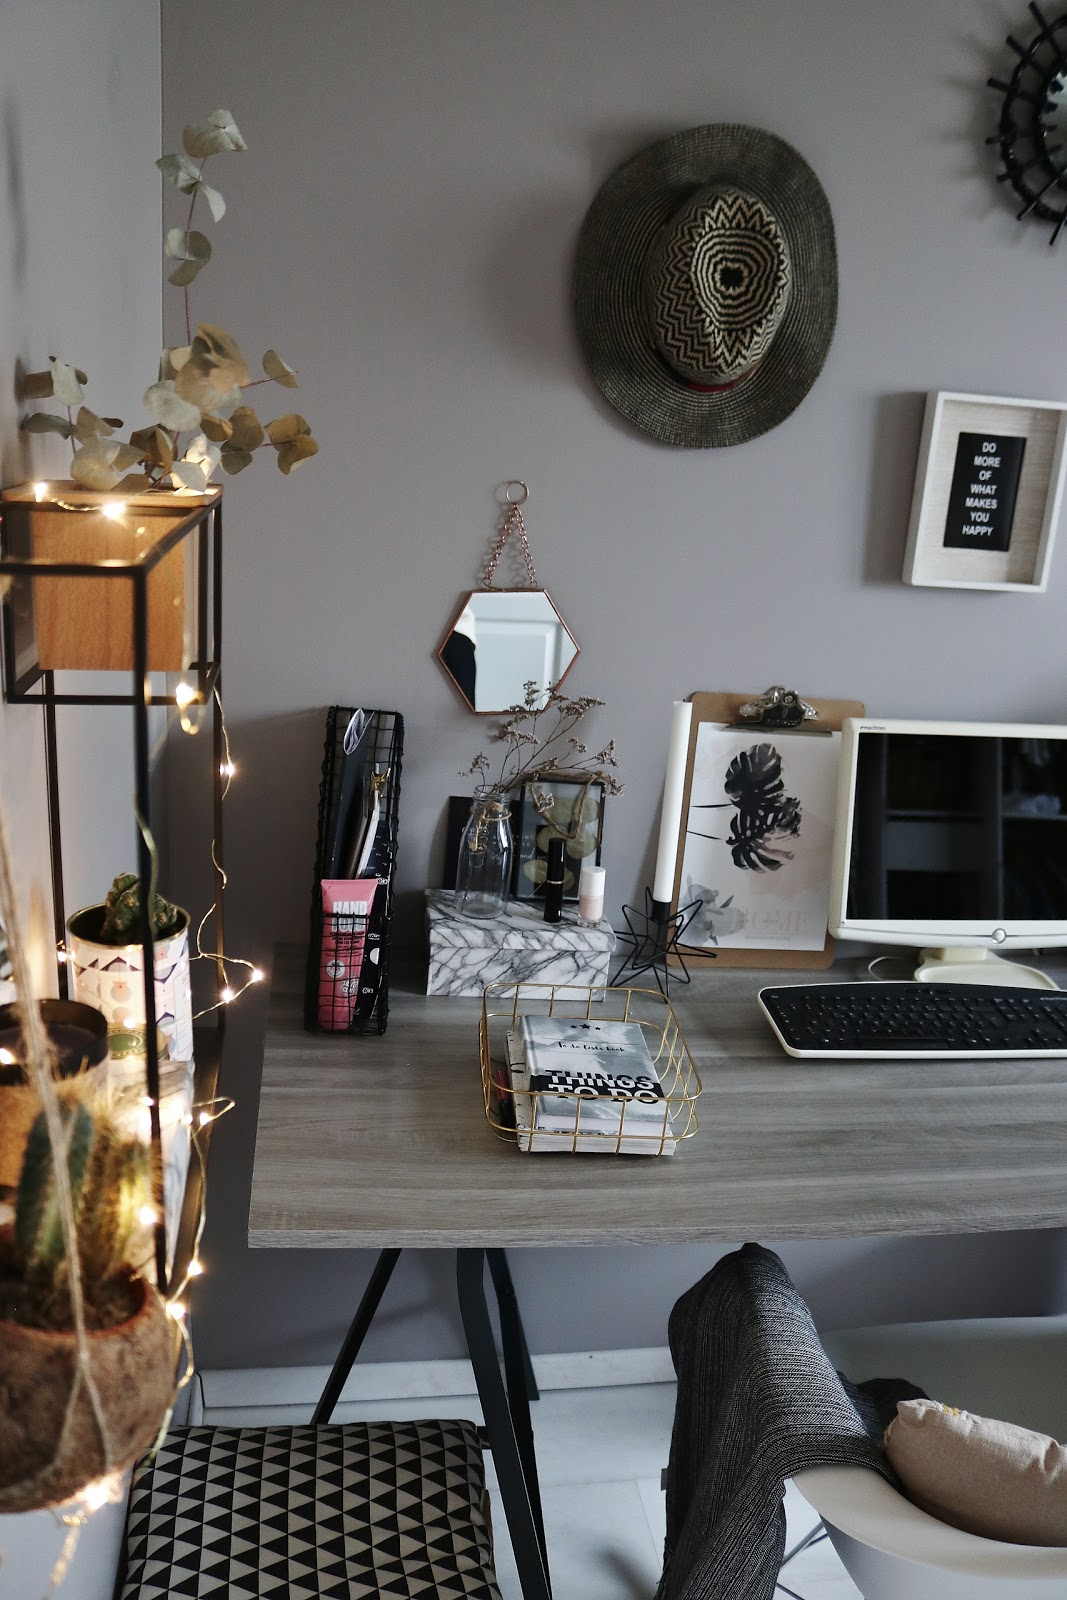 pauline-dress-decoration-selection-home-interieur-deco-besancon-blog-mode-lifestyle-bureau-treteaux